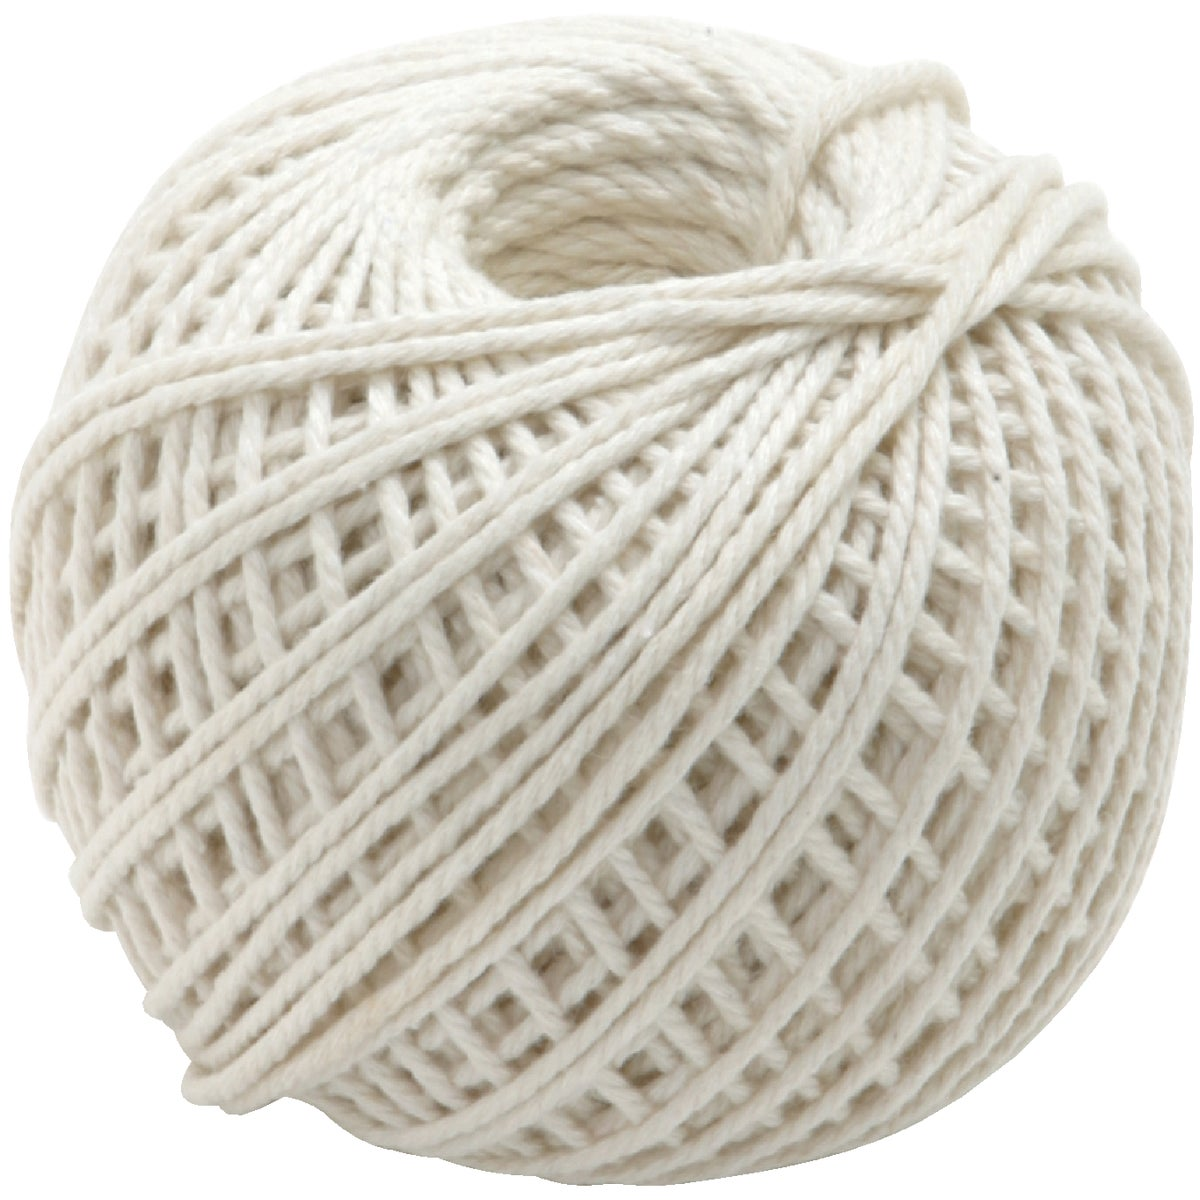 FOOD SAFE COTTON TWINE - 942 by Norpro